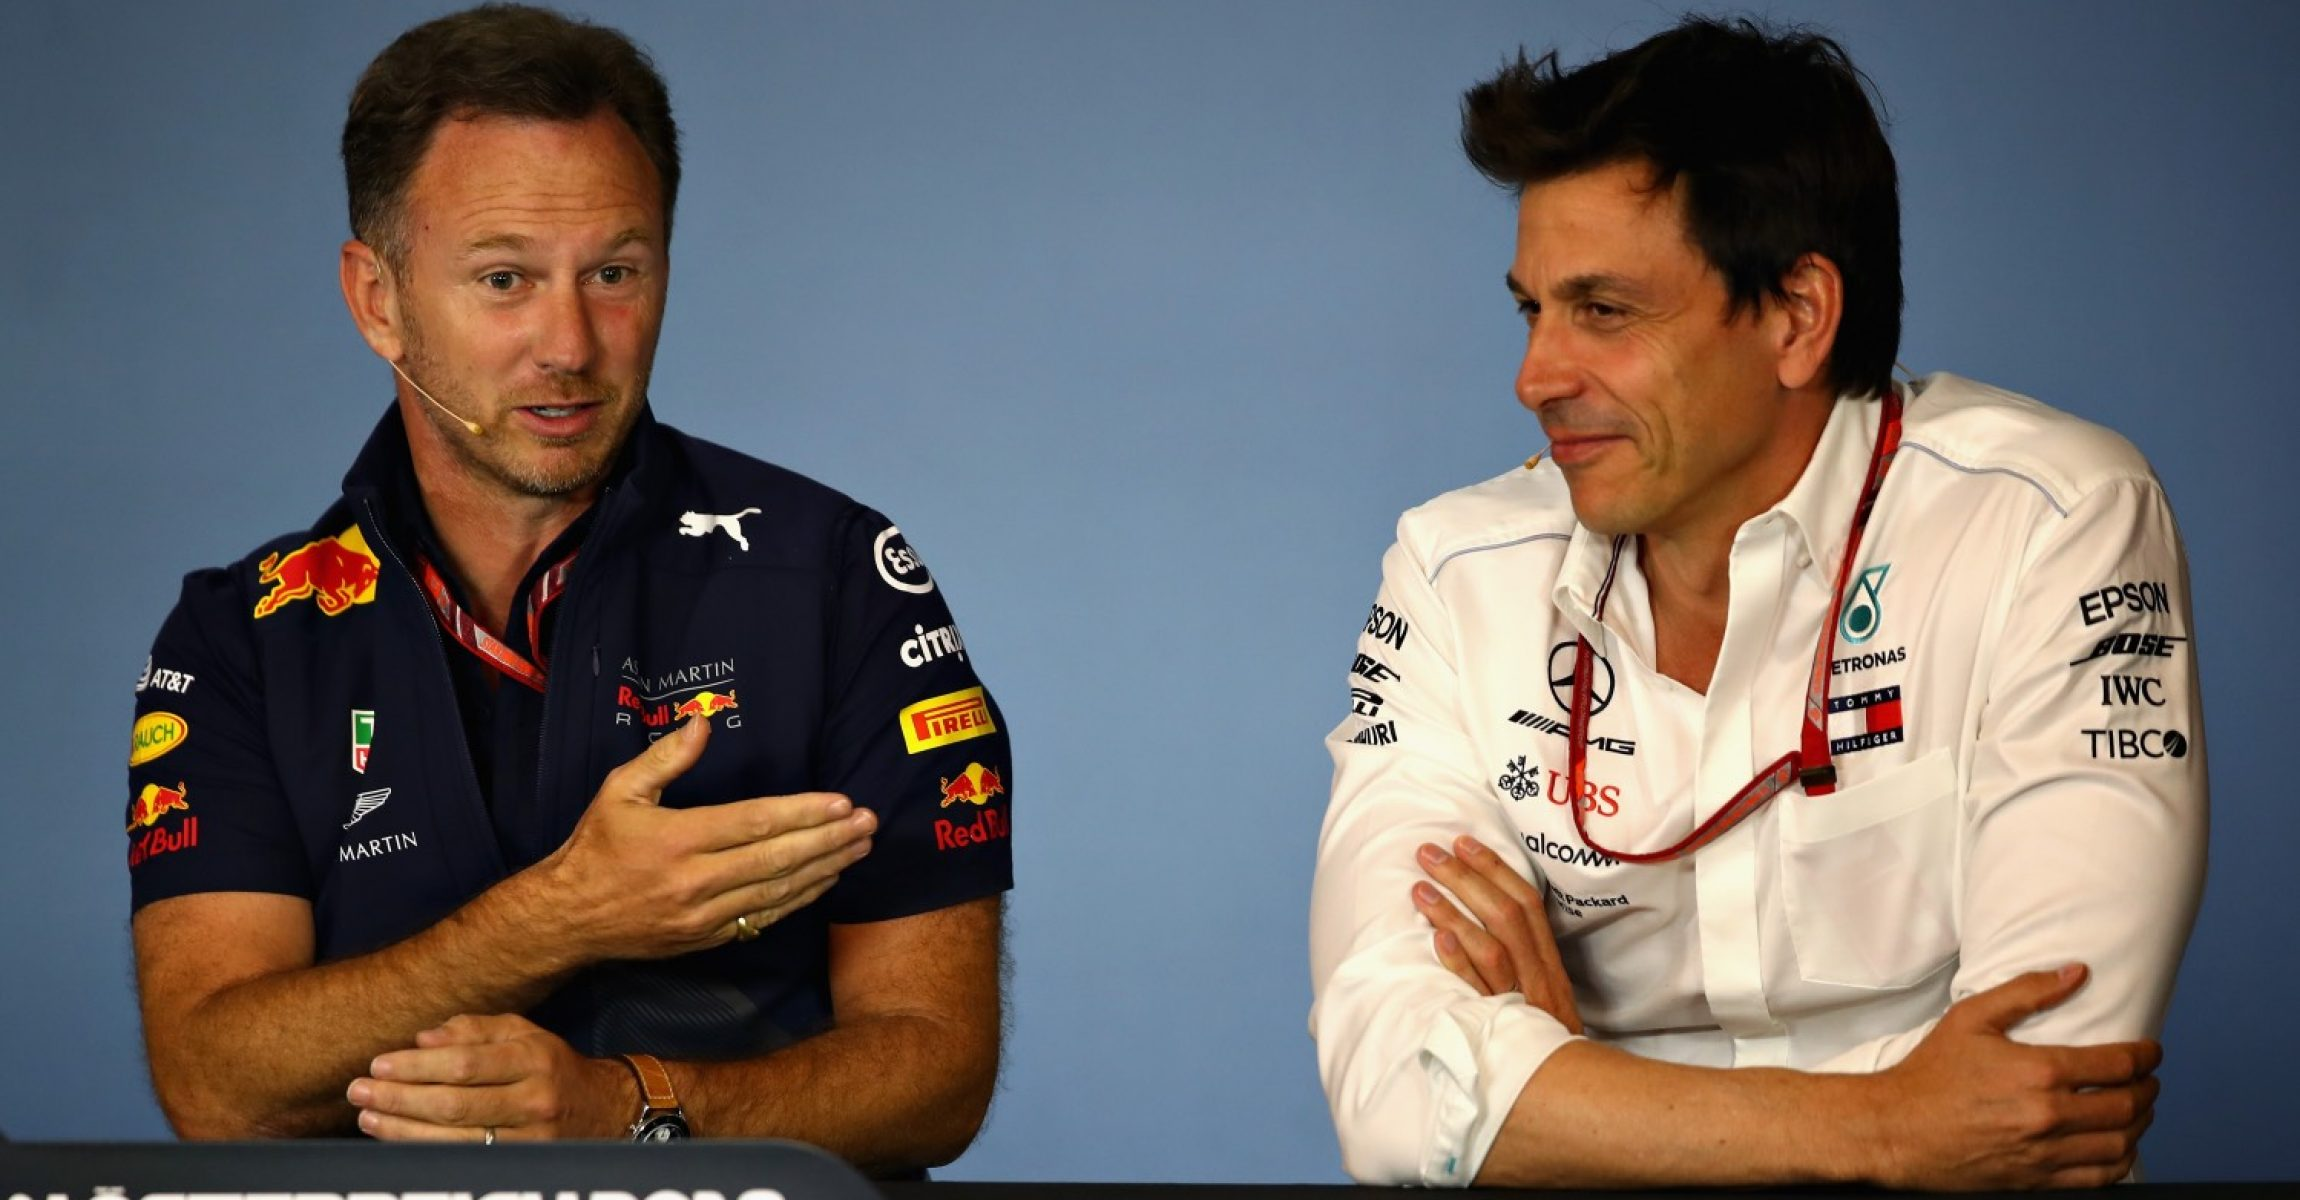 SPIELBERG, AUSTRIA - JUNE 29: Red Bull Racing Team Principal Christian Horner and Mercedes GP Executive Director Toto Wolff in the Team Principals Press Conference during practice for the Formula One Grand Prix of Austria at Red Bull Ring on June 29, 2018 in Spielberg, Austria. (Photo by Mark Thompson/Getty Images)